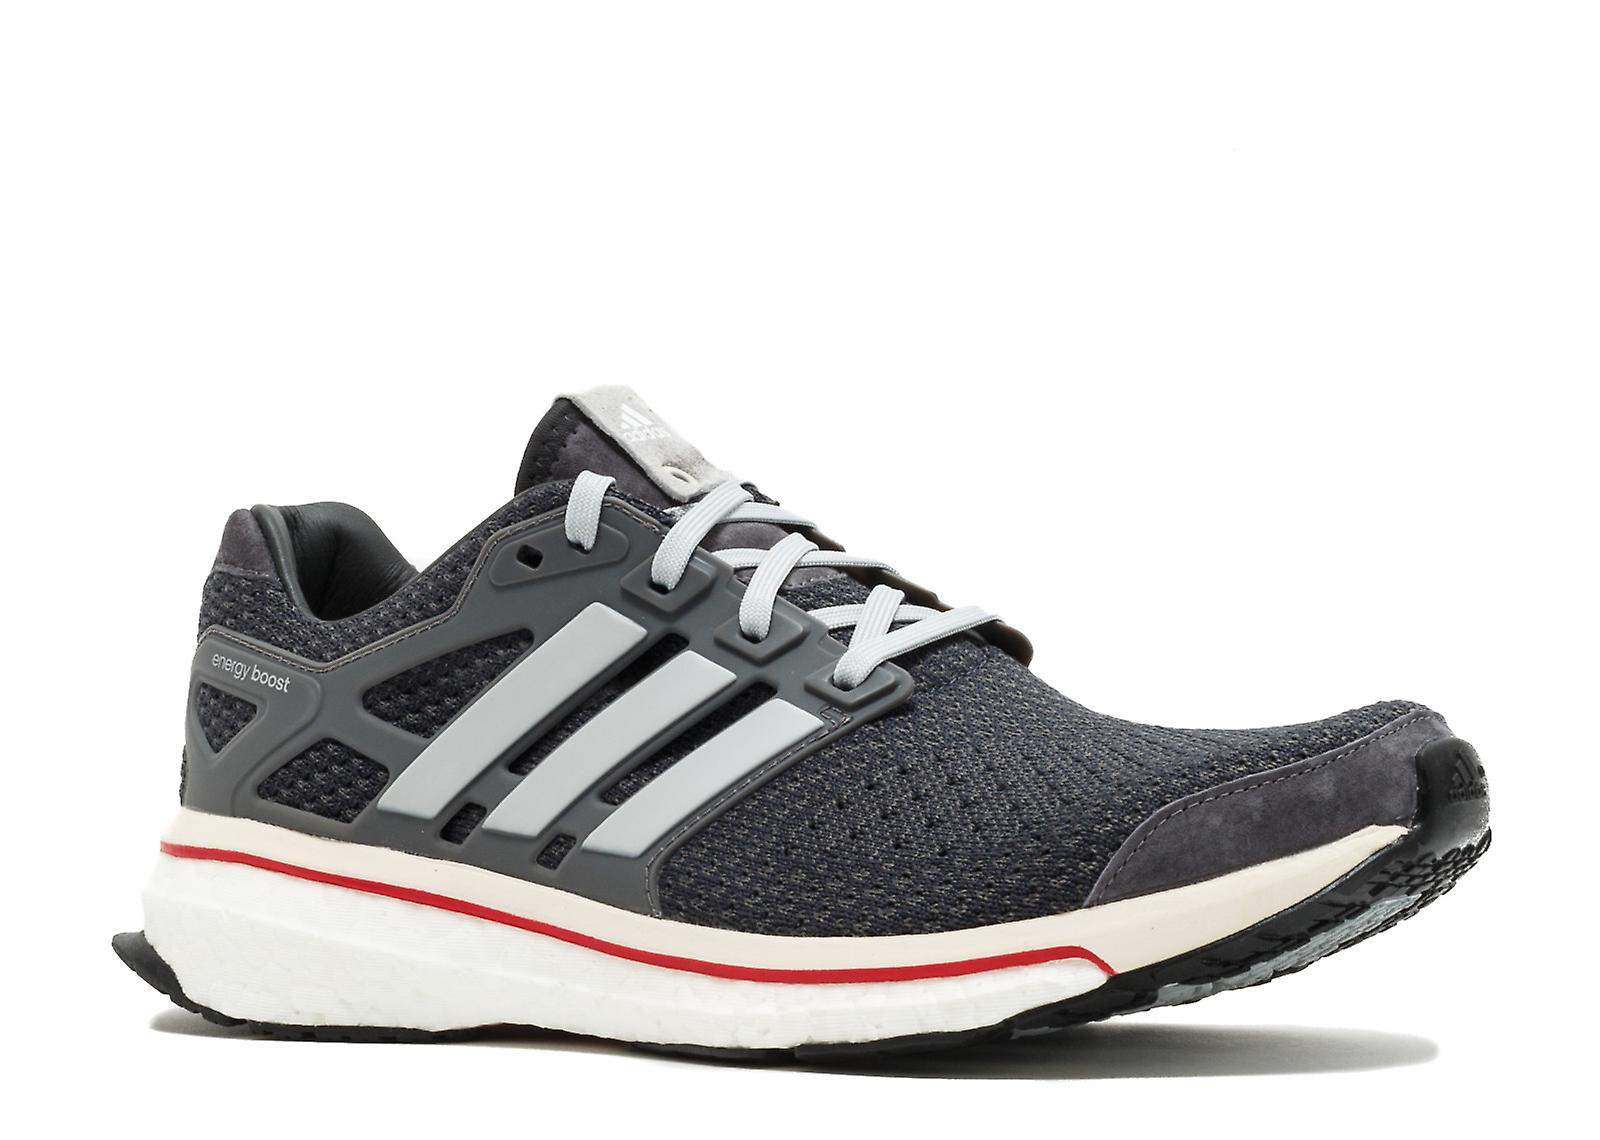 wholesale dealer 232cd 3ab7a Energy Boost Run Thru Time - S81135 - Shoes